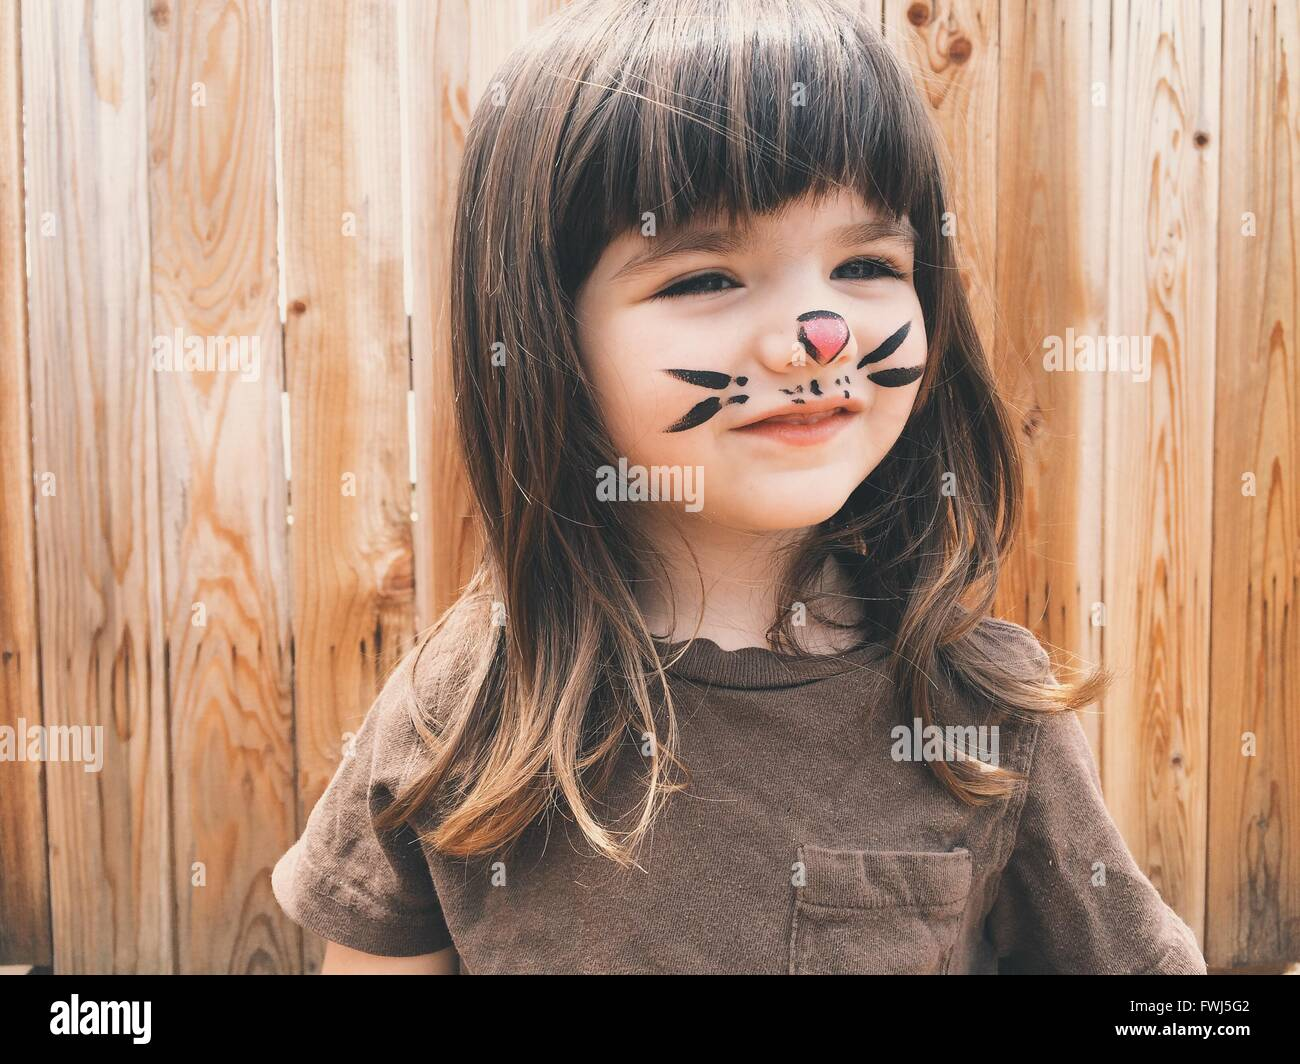 Portrait Of Smiling cute girl avec la peinture sur visage Standing Outdoors Photo Stock